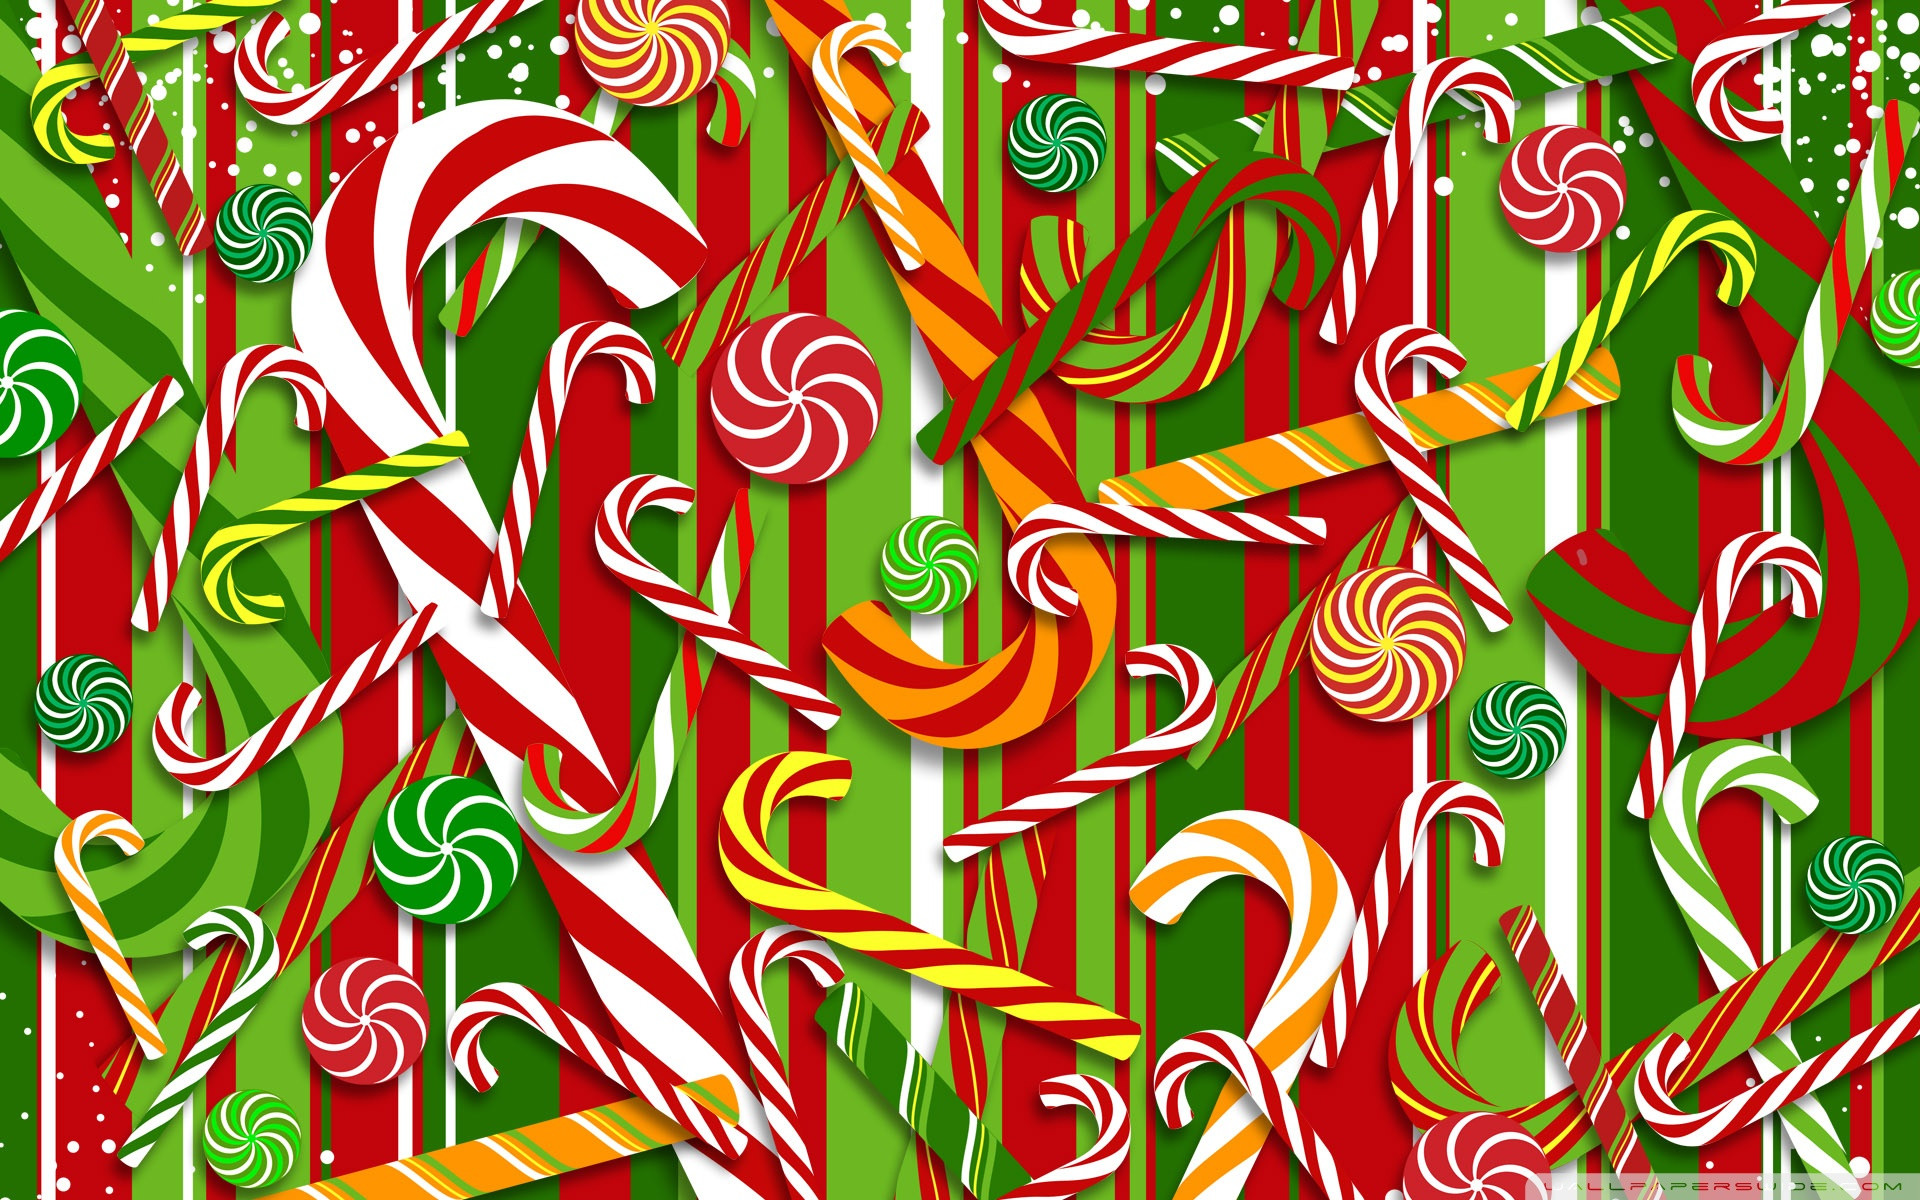 Christmas Candy Images  100 Best HD Christmas Wallpapers for Your Desktop